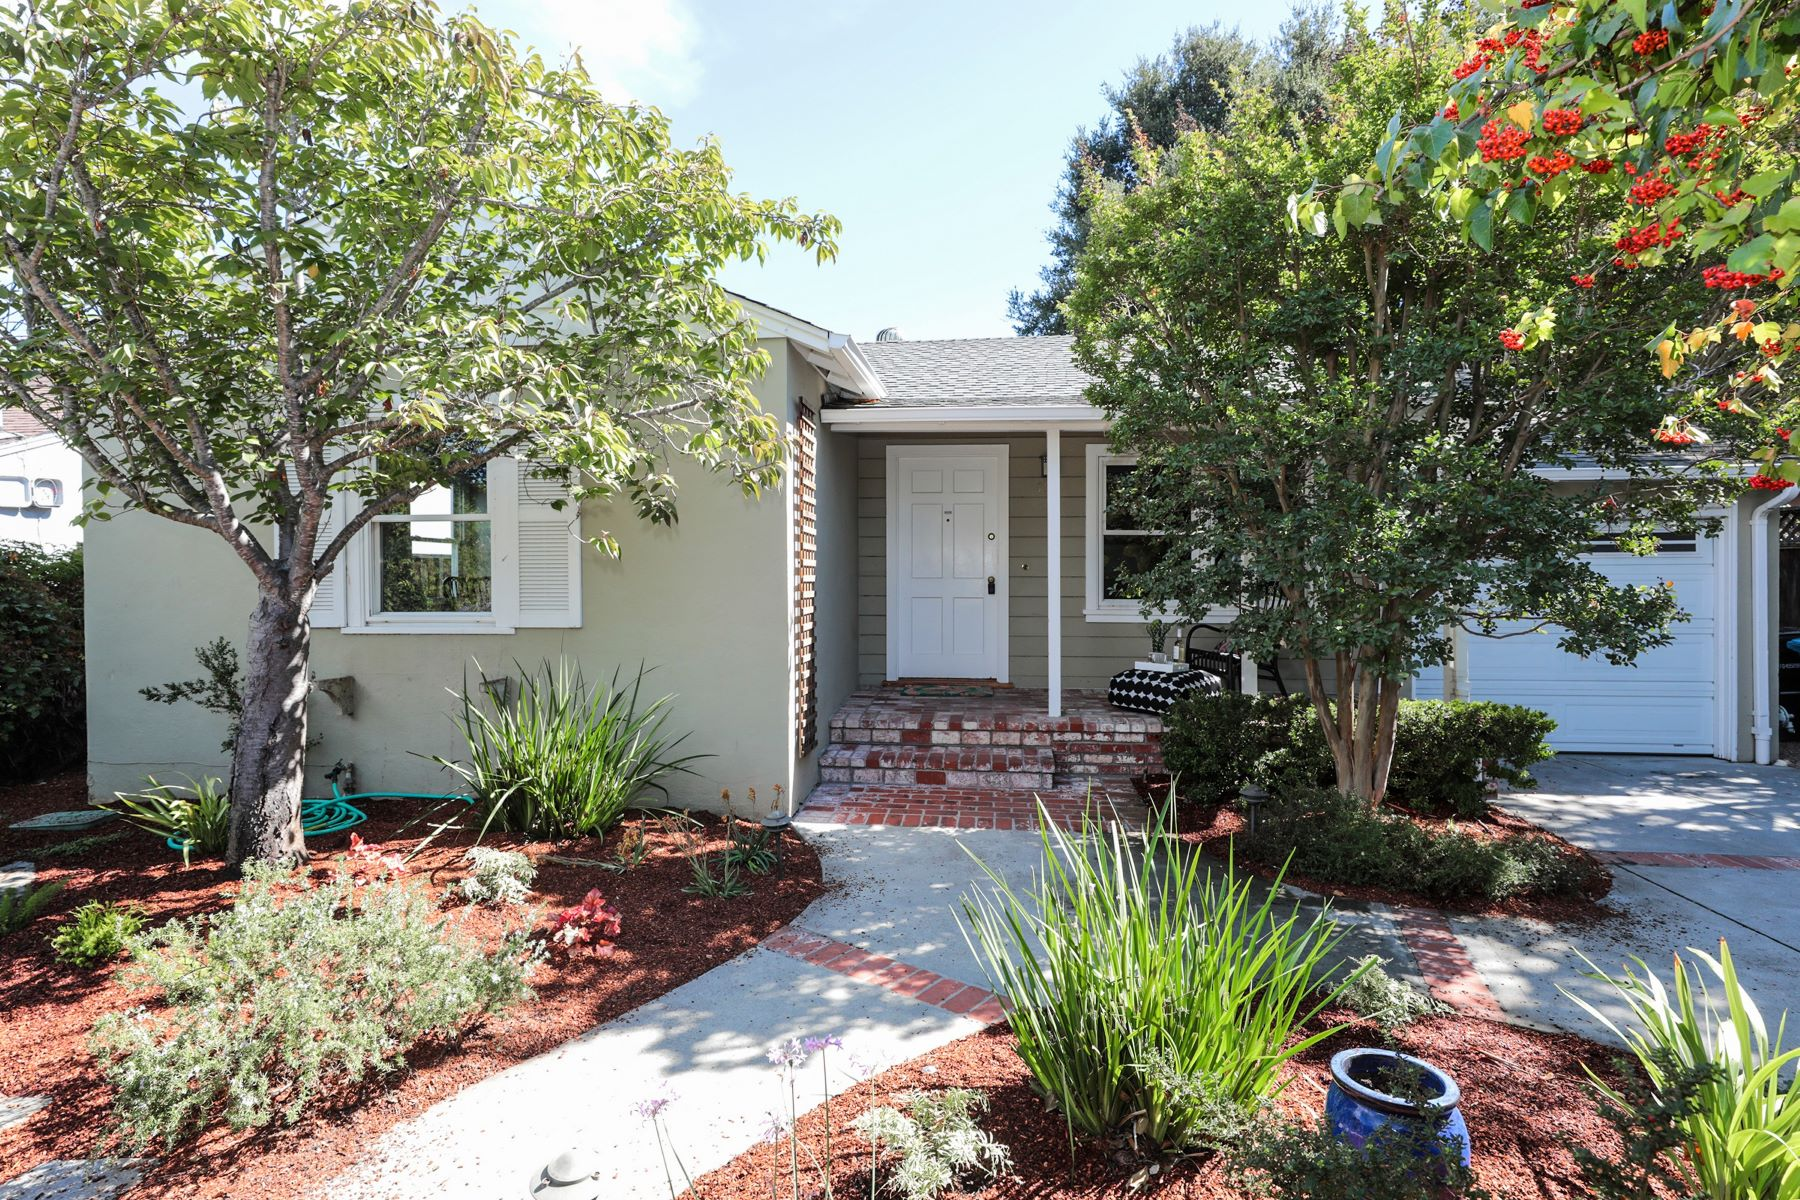 Single Family Home for Active at 754 15th Avenue 754 15th Avenue Menlo Park, California 94025 United States